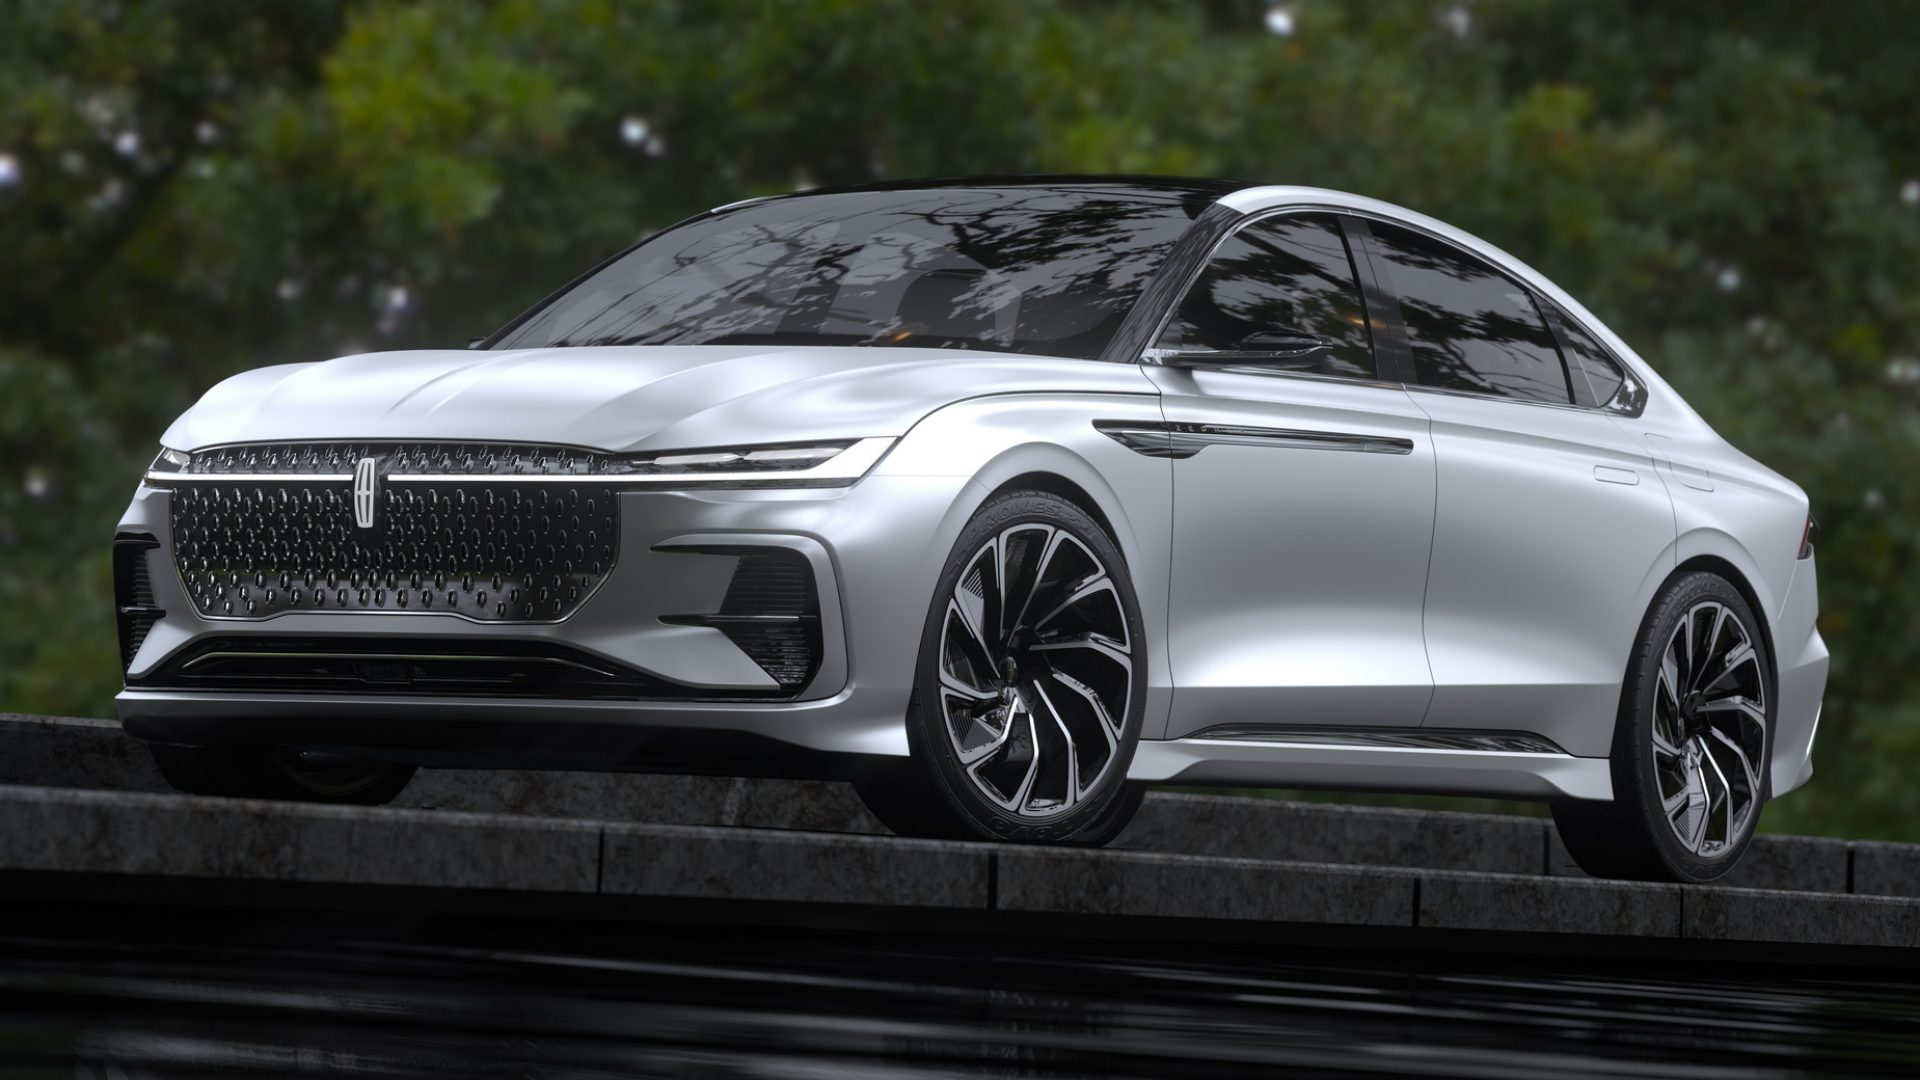 2021-Lincoln-Zephyr-Reflection-Preview-Car-01